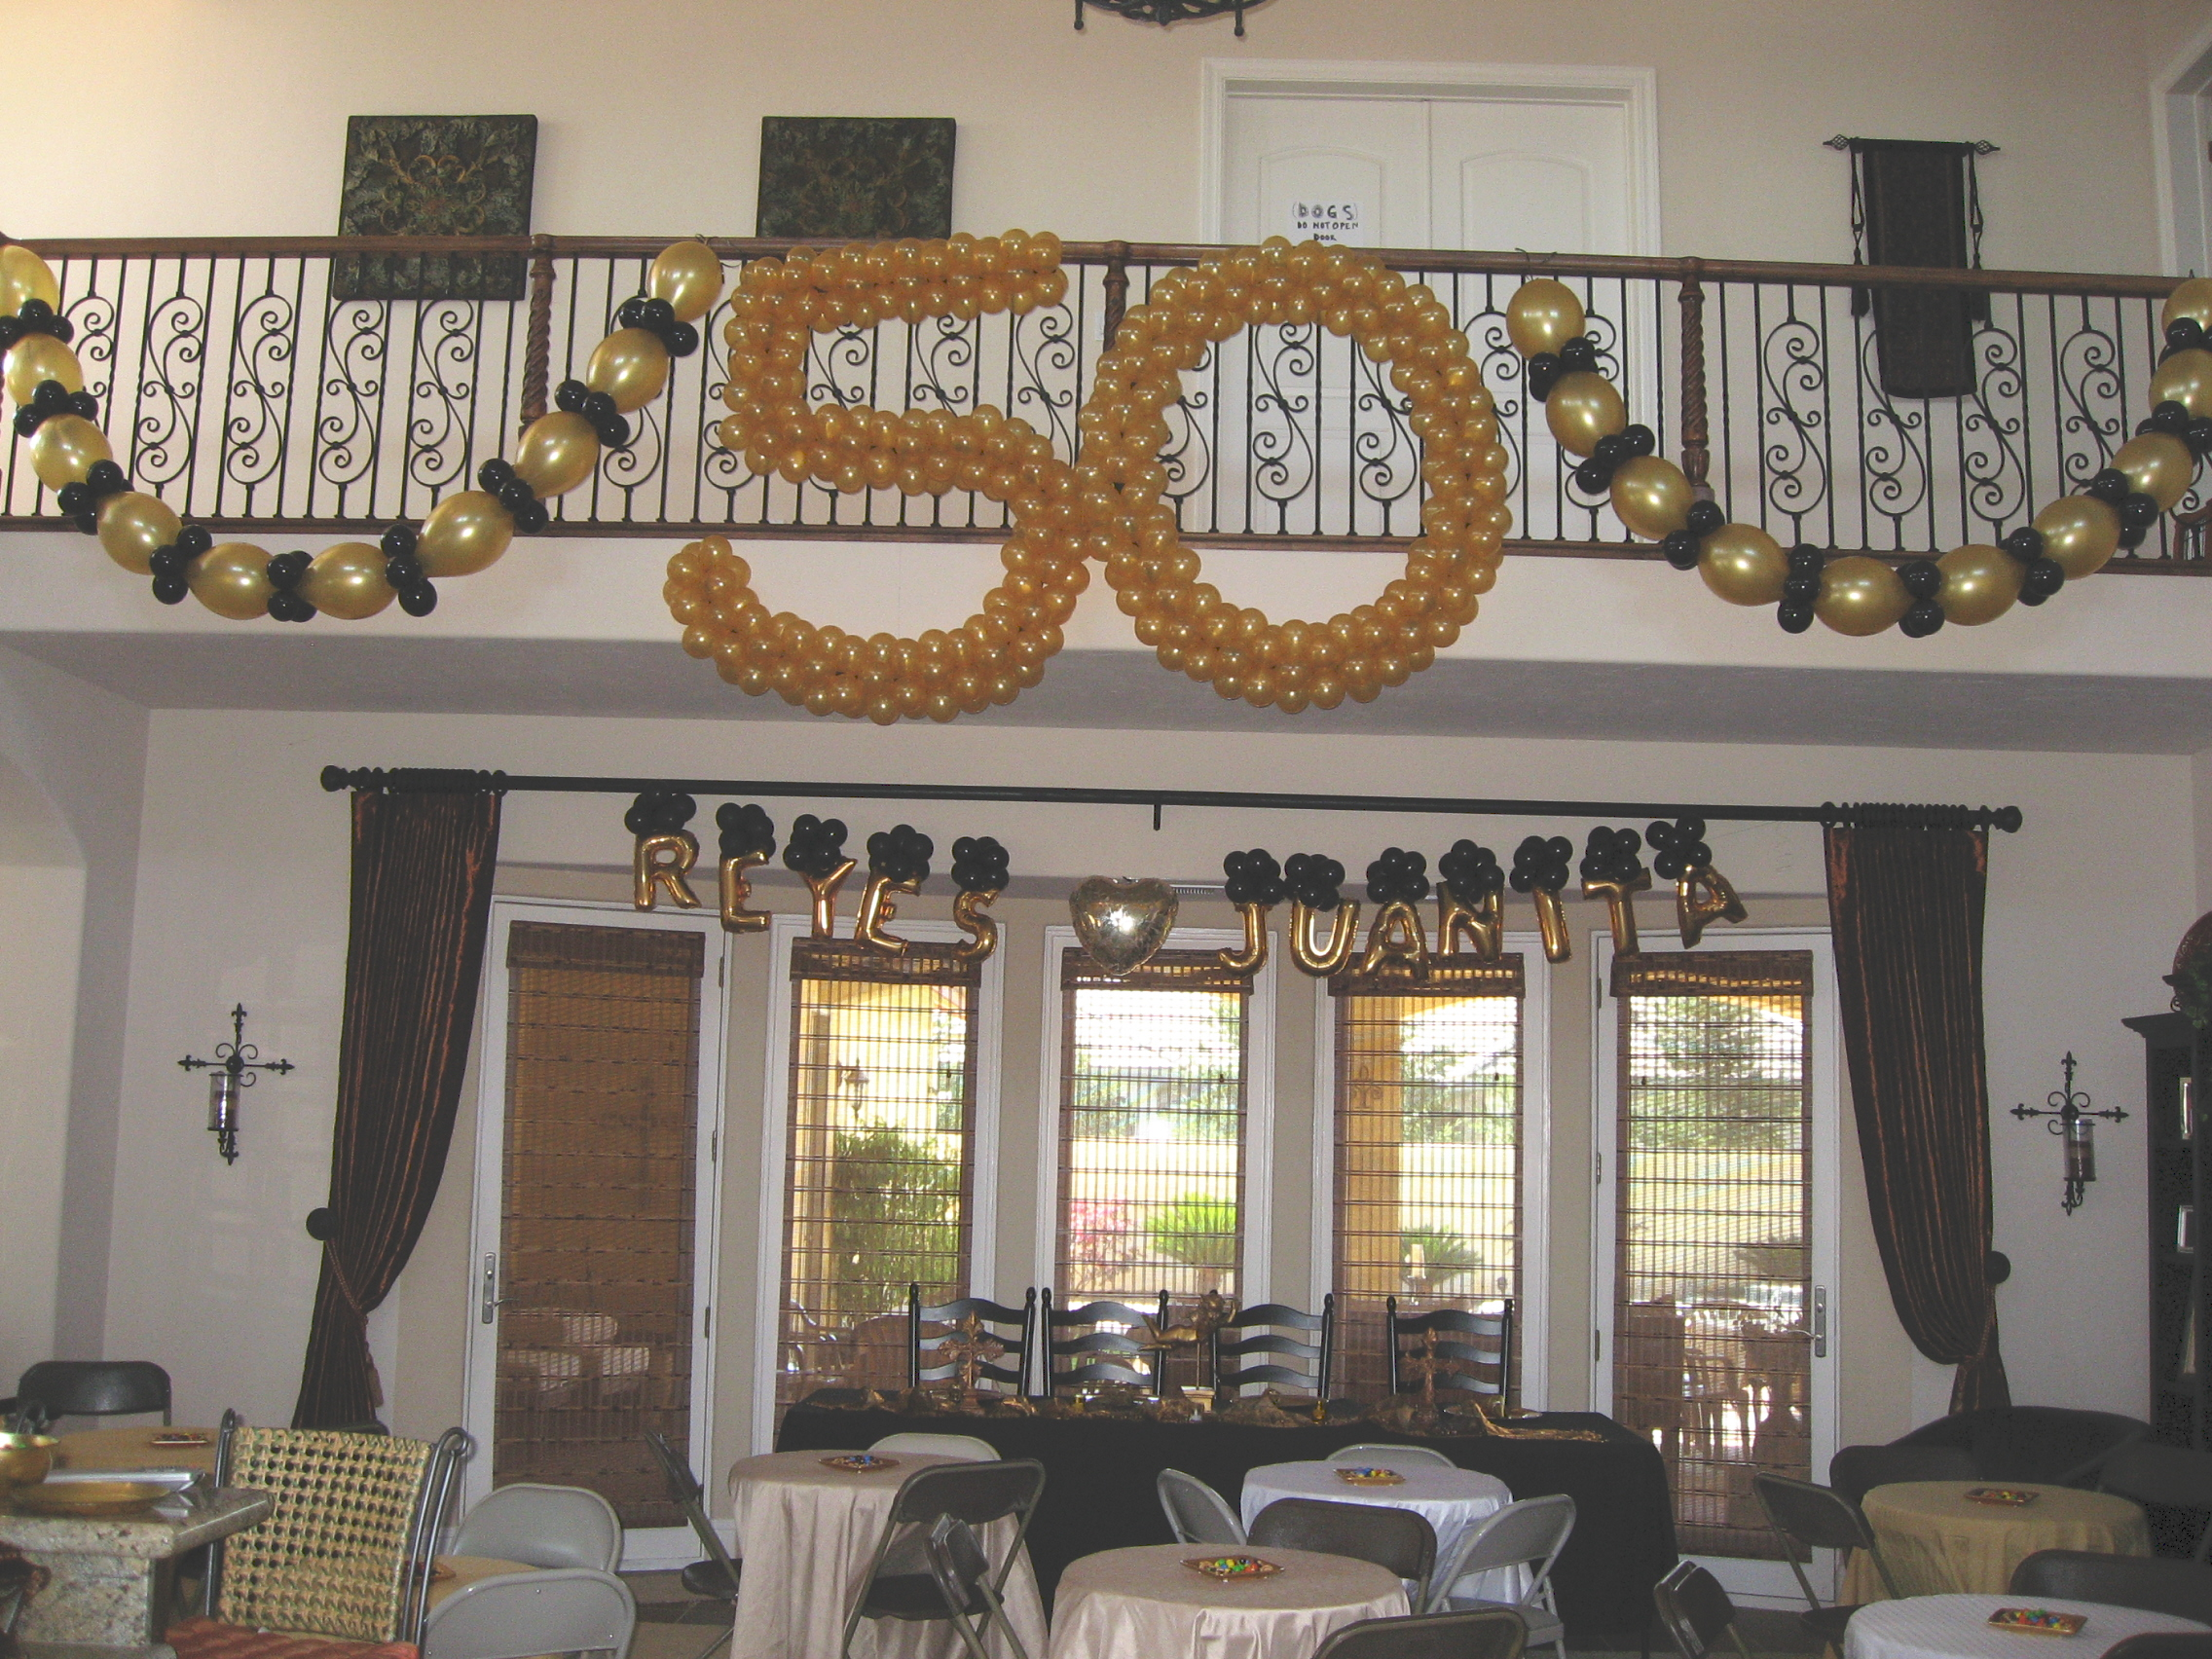 Wedding world golden wedding anniversary gift ideas for 50th birthday decoration ideas